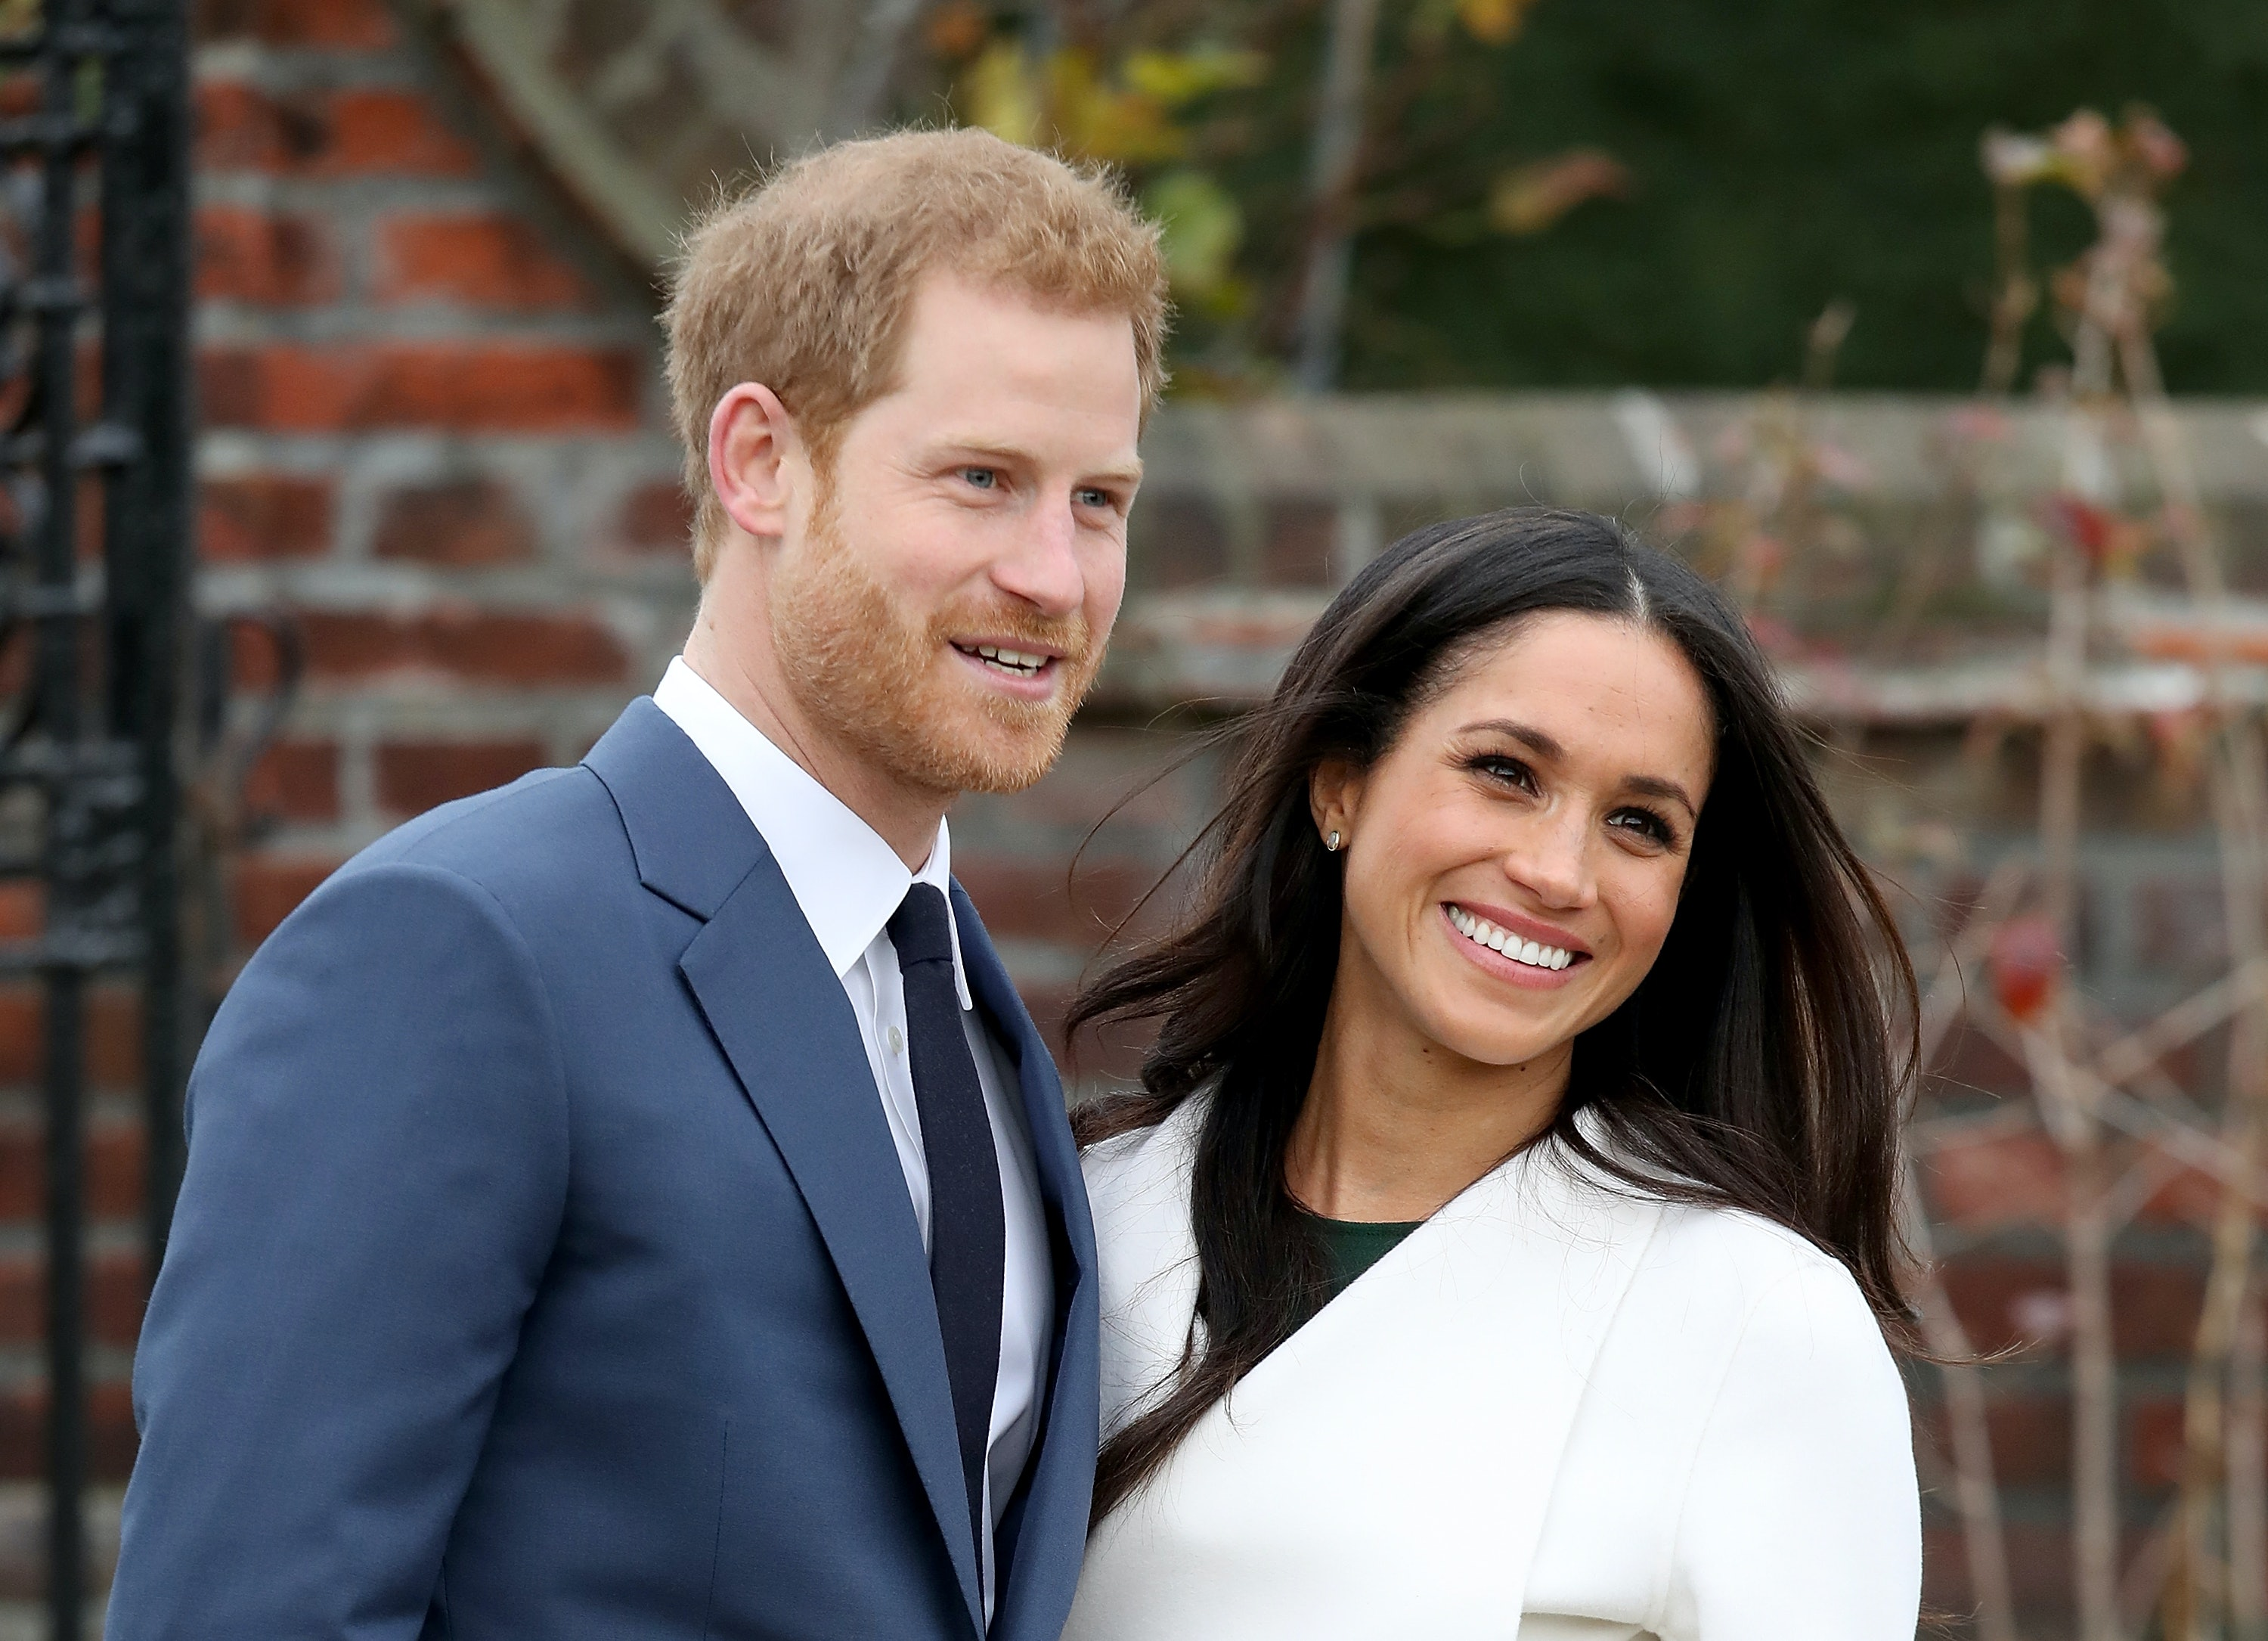 British Royal family issues official statement on Prince Harry and Meghan's engagement